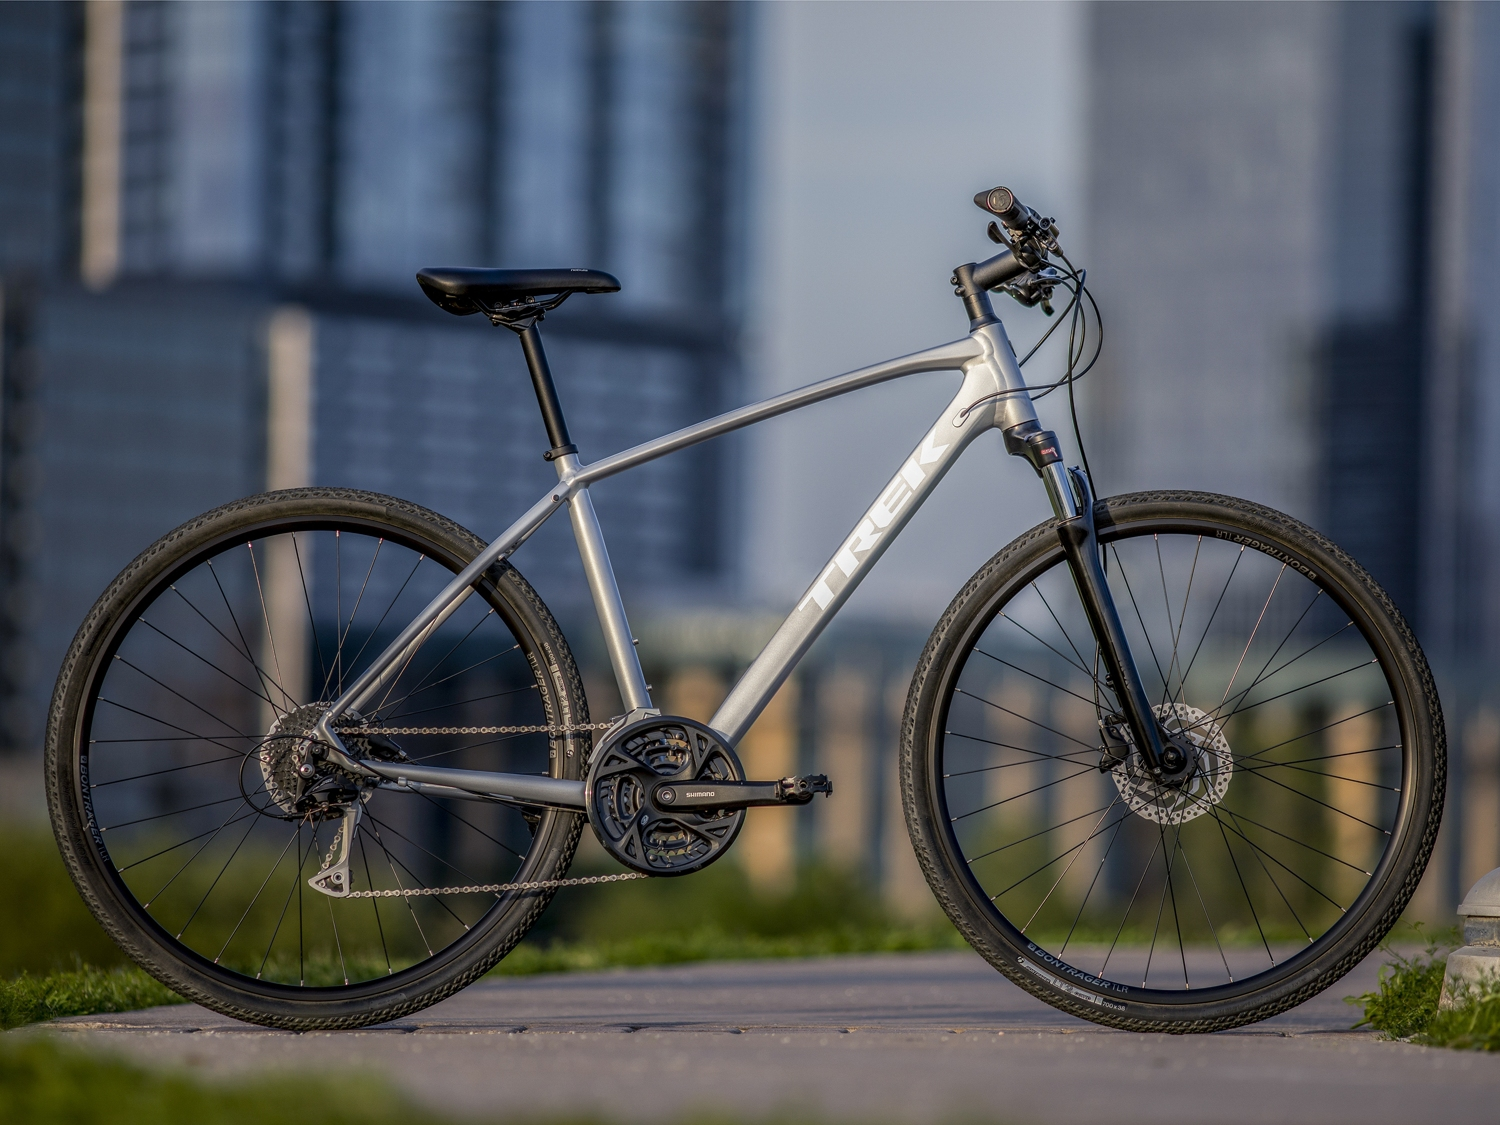 b744e0a6a74 The 2019 Trek Dual Sport 3 is a lightweight aluminium hybrid bike with  high-performance hydraulic disc brakes, wide range gearing and tubeless  ready rims ...